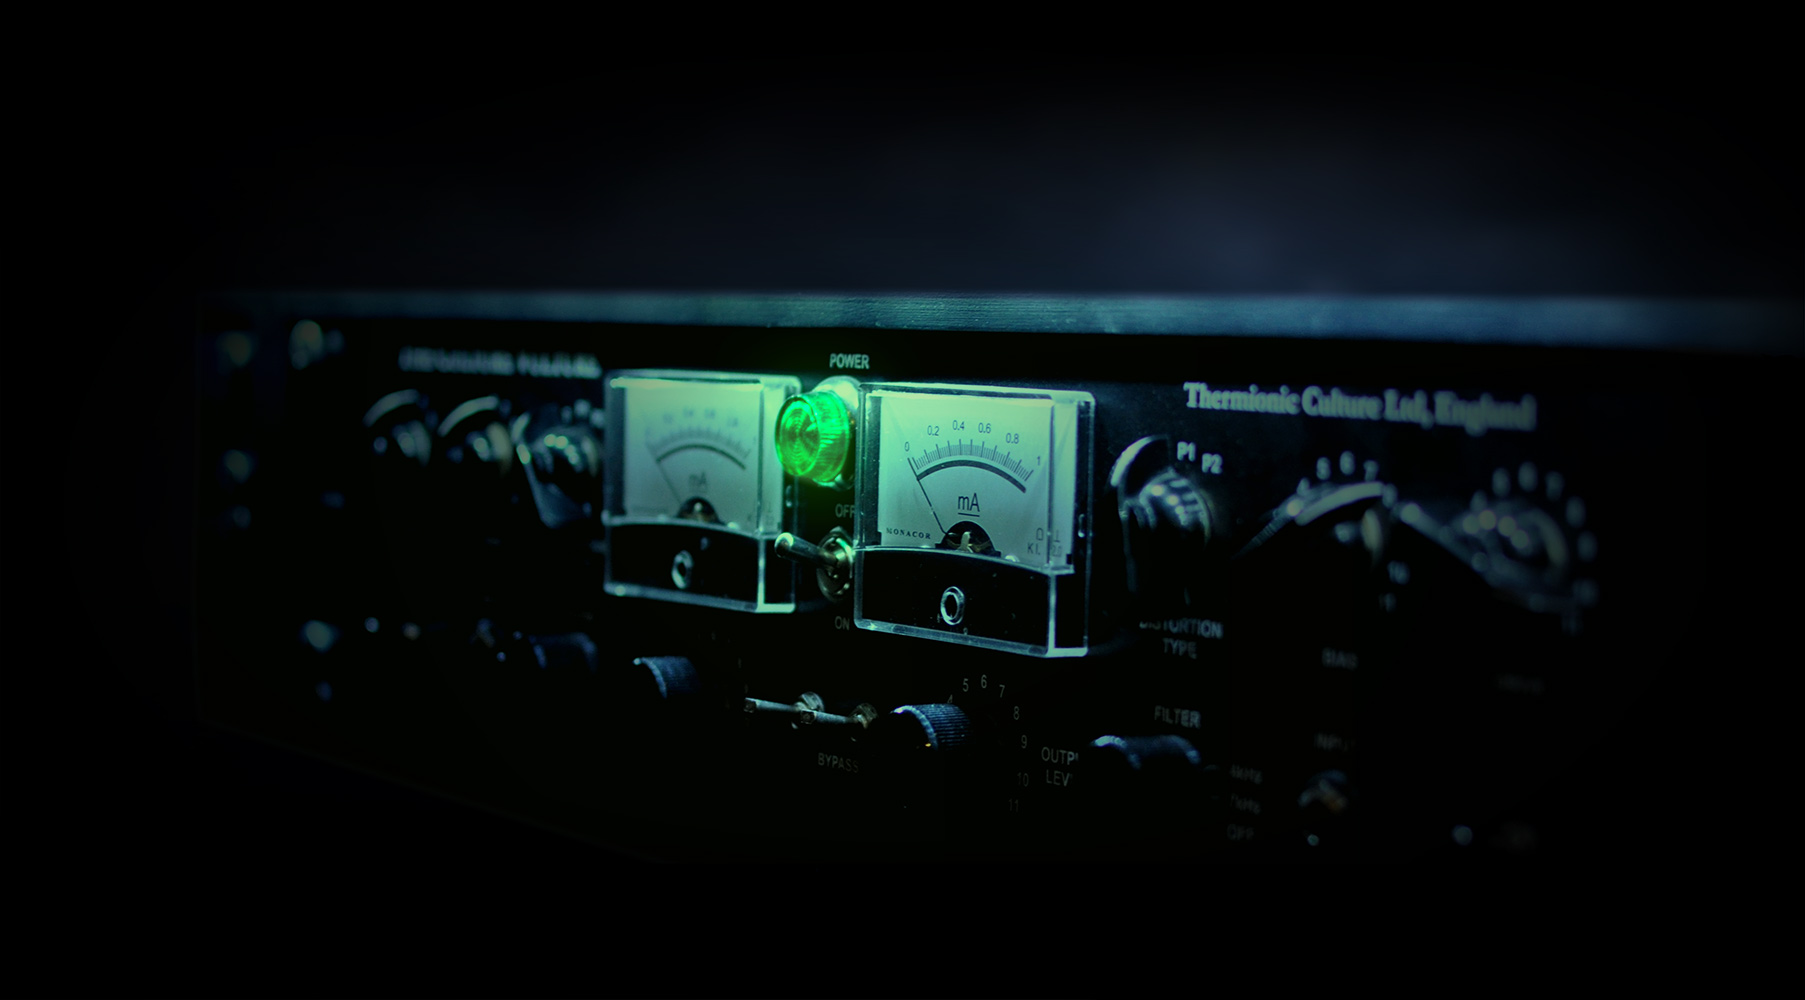 Plug-In Thermionic Culture Vulture